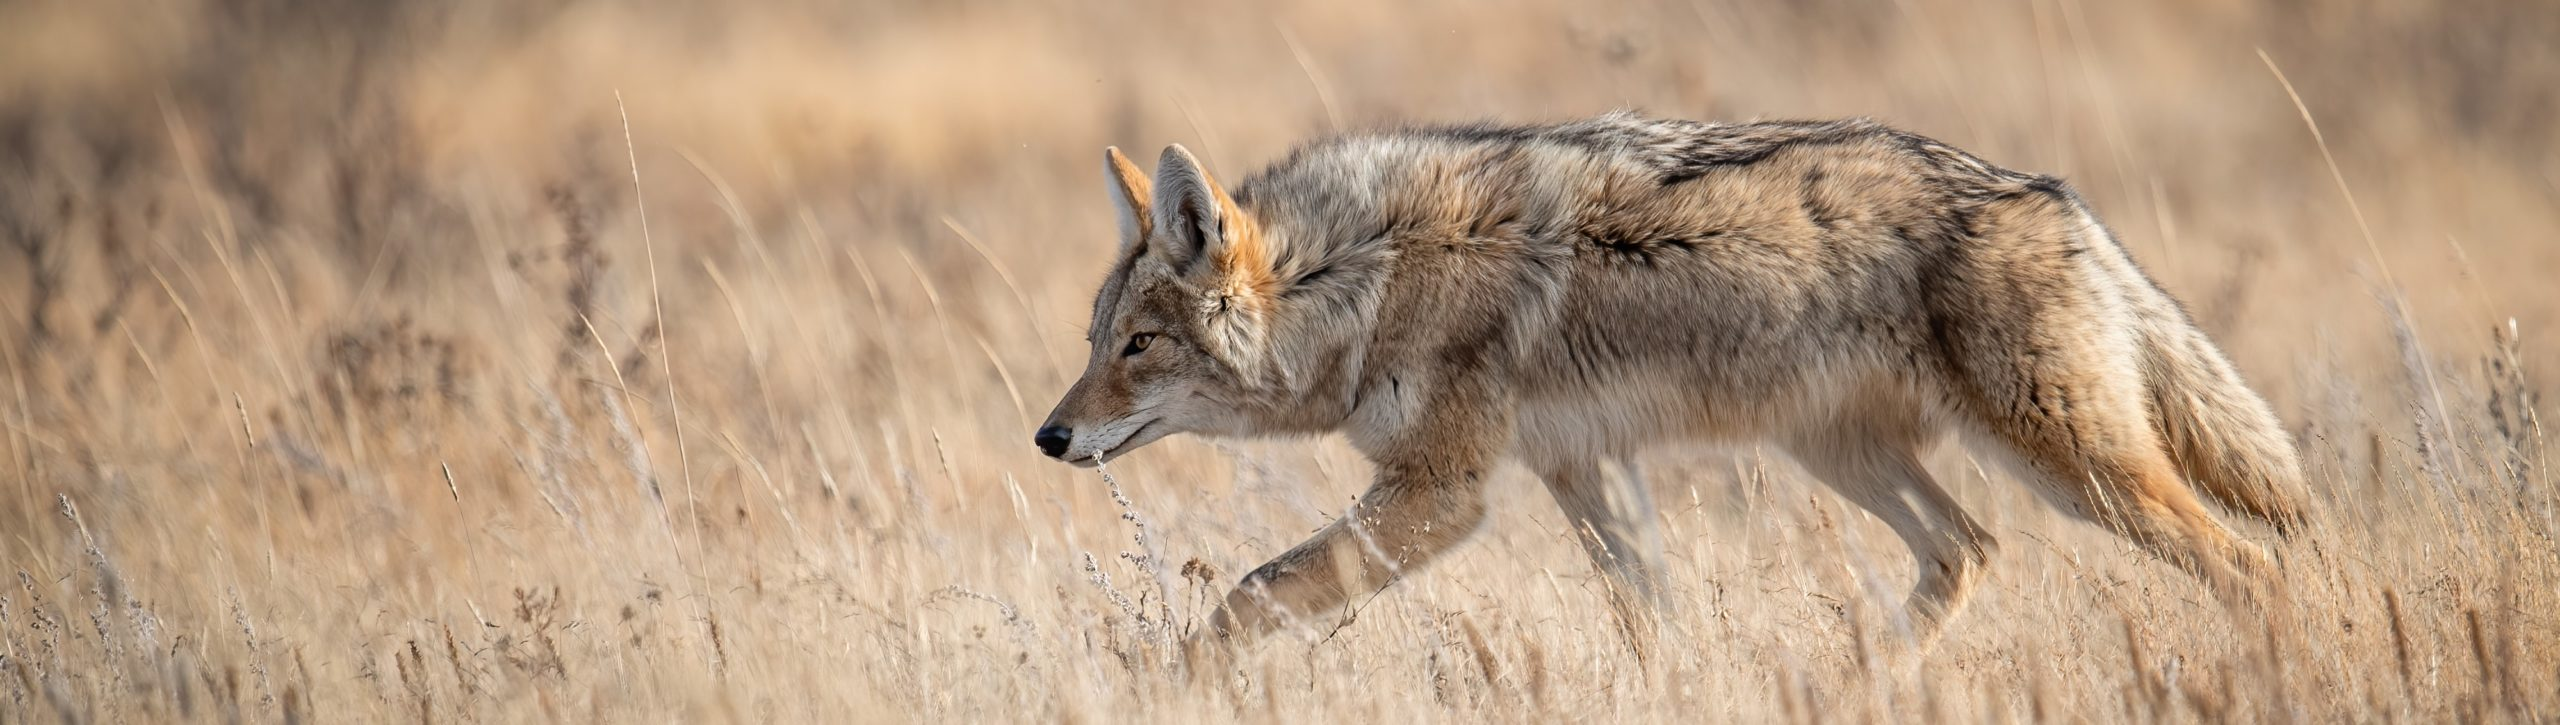 Image of a north american coyote